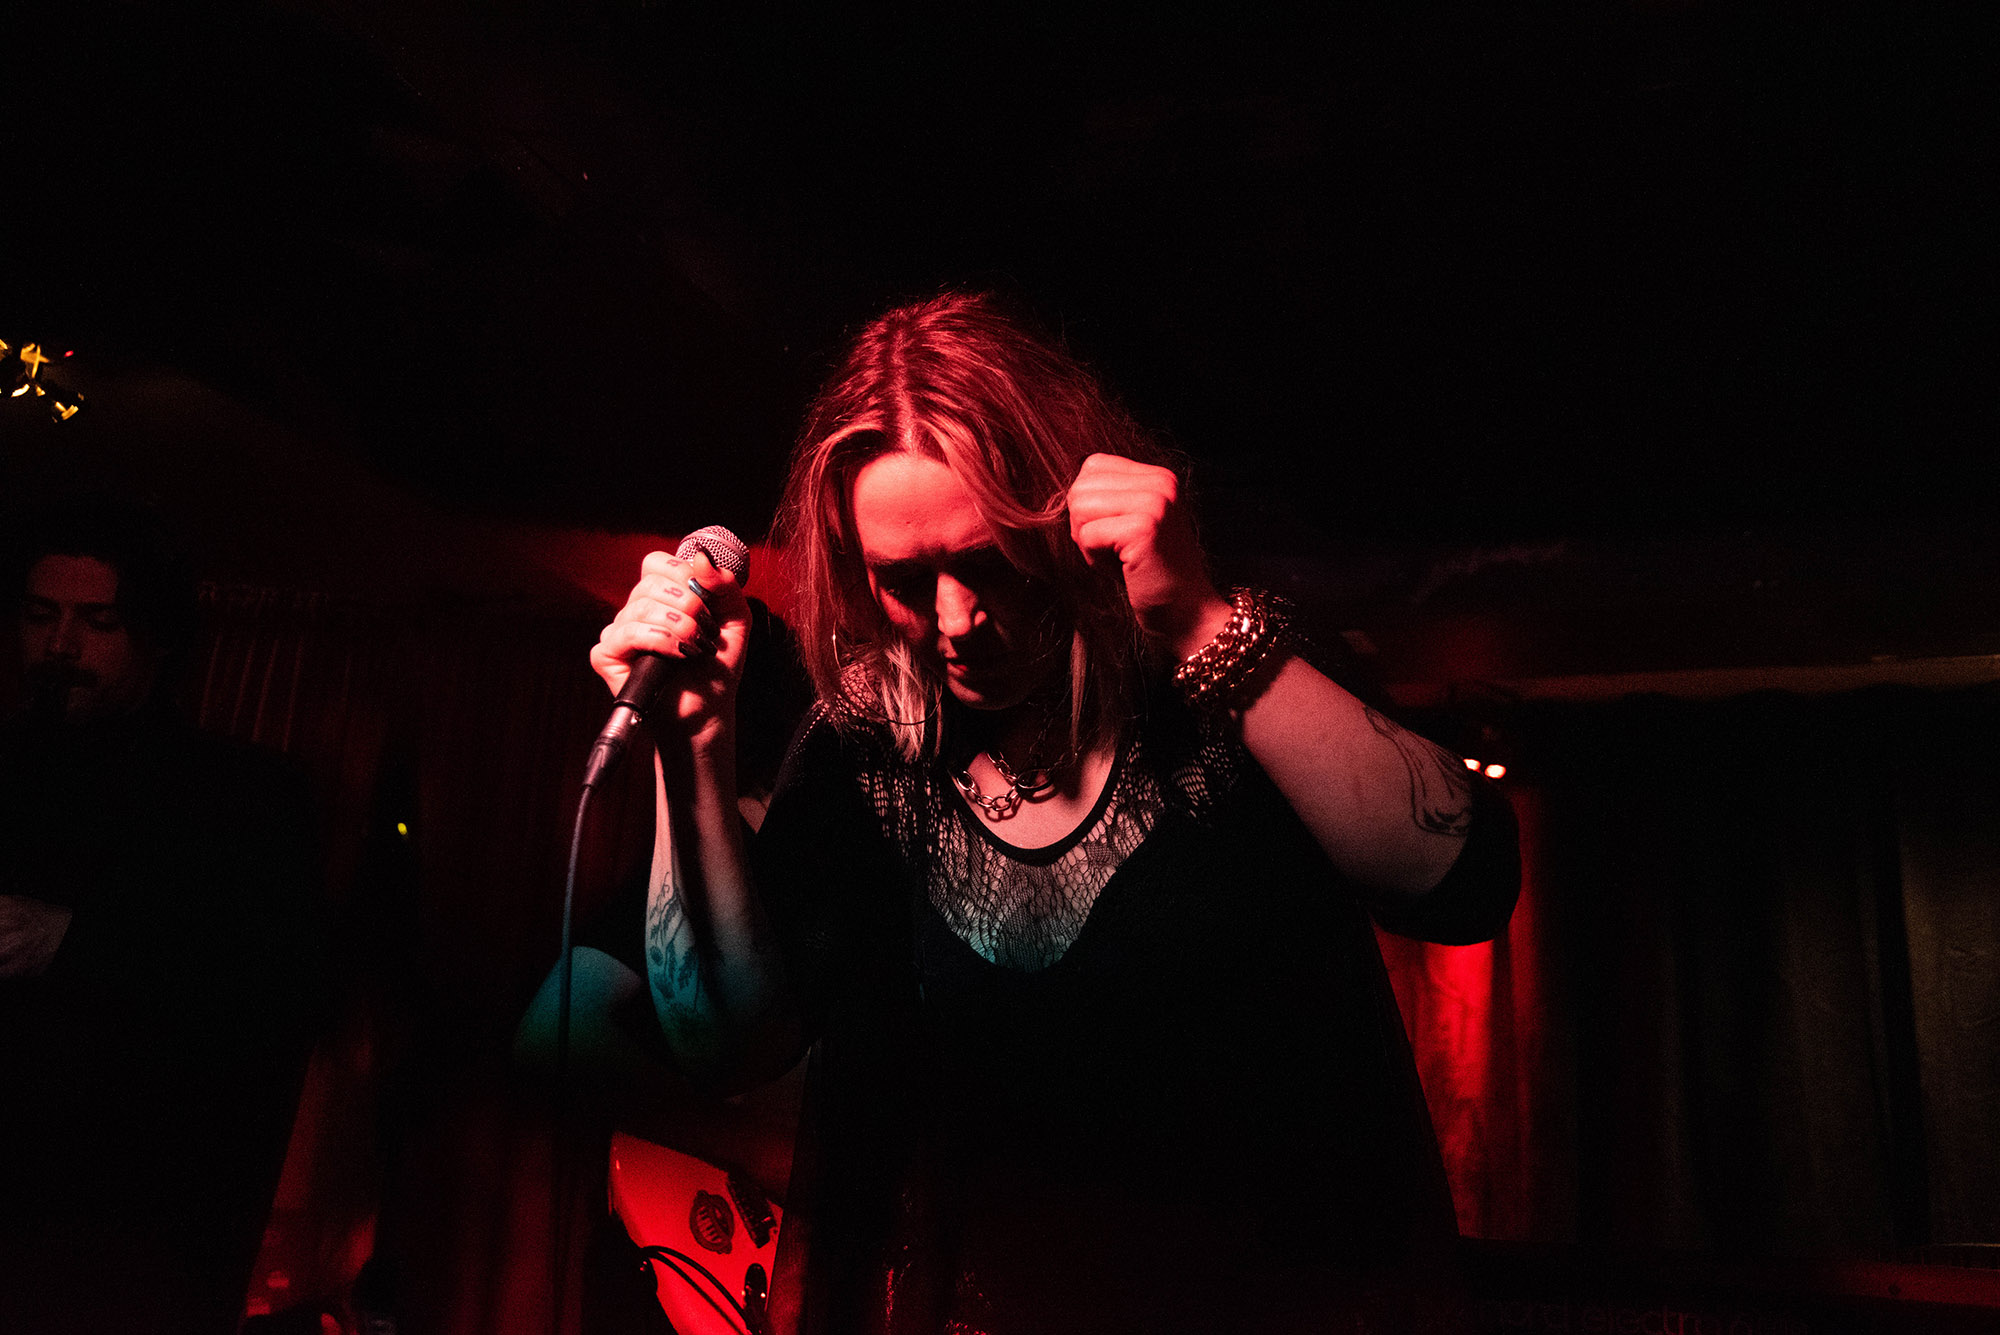 Cat and The Queen at Monarch Tavern, April 2019 - Cat performing